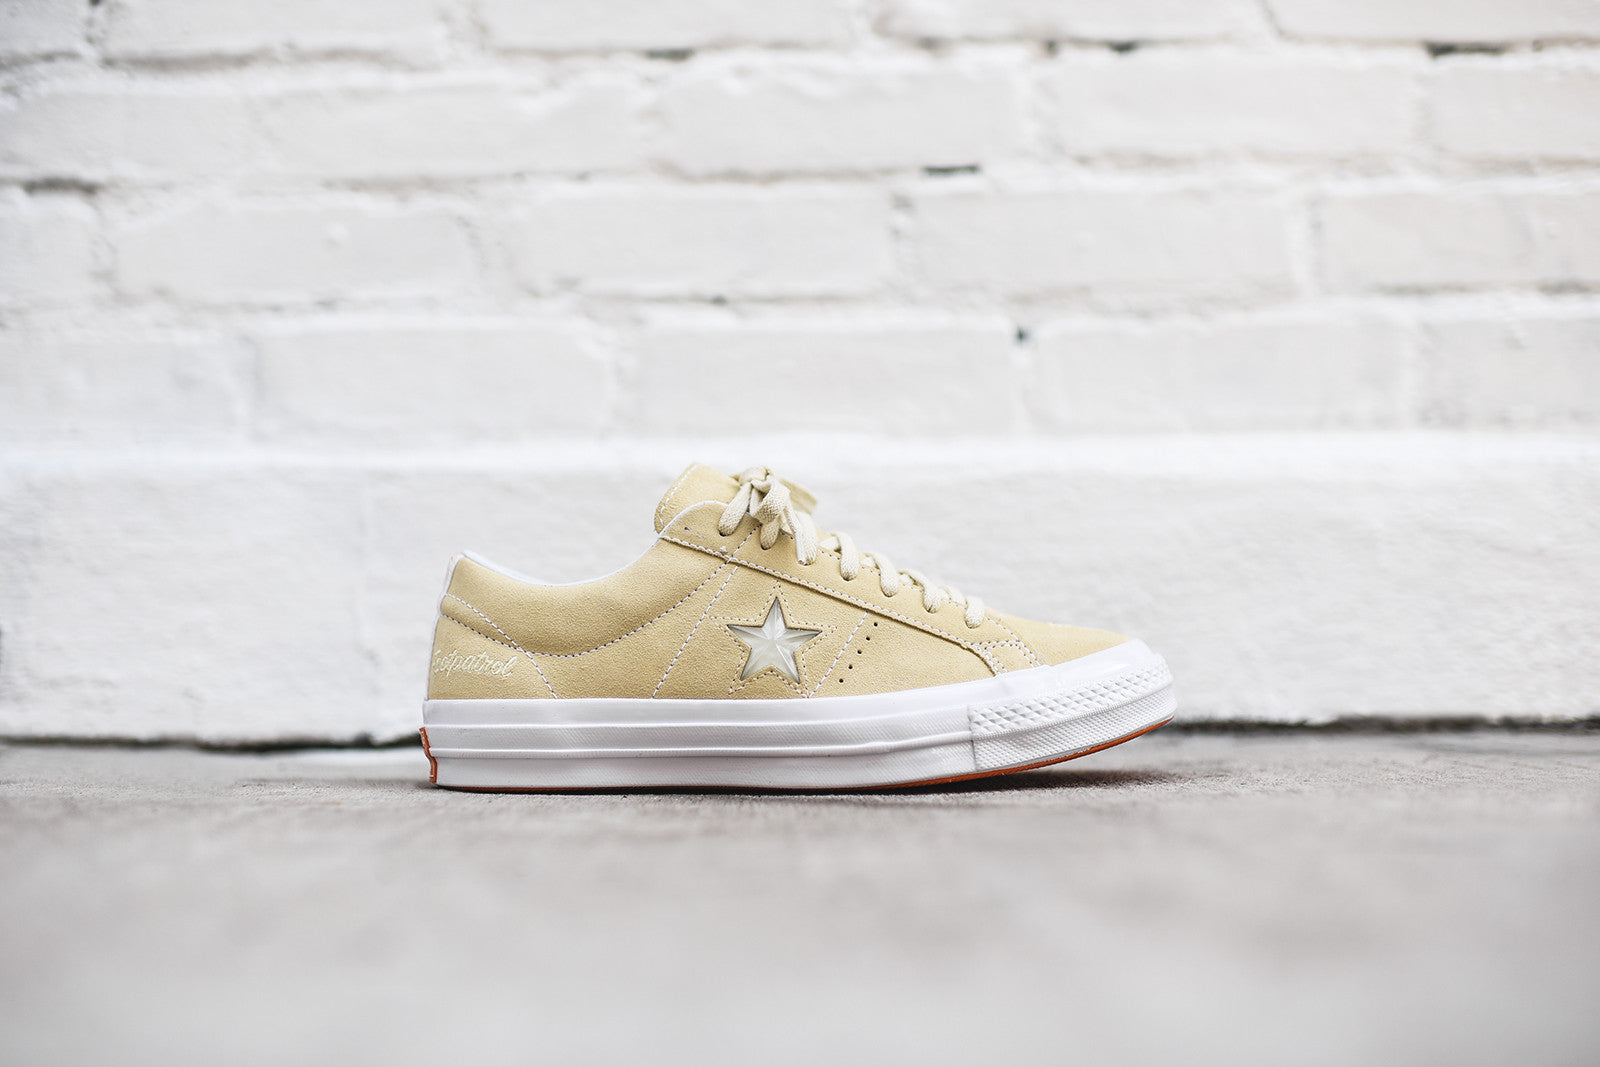 a02e8fdc7f82 Converse x Footpatrol One Star Ox - Cream   White. July 12